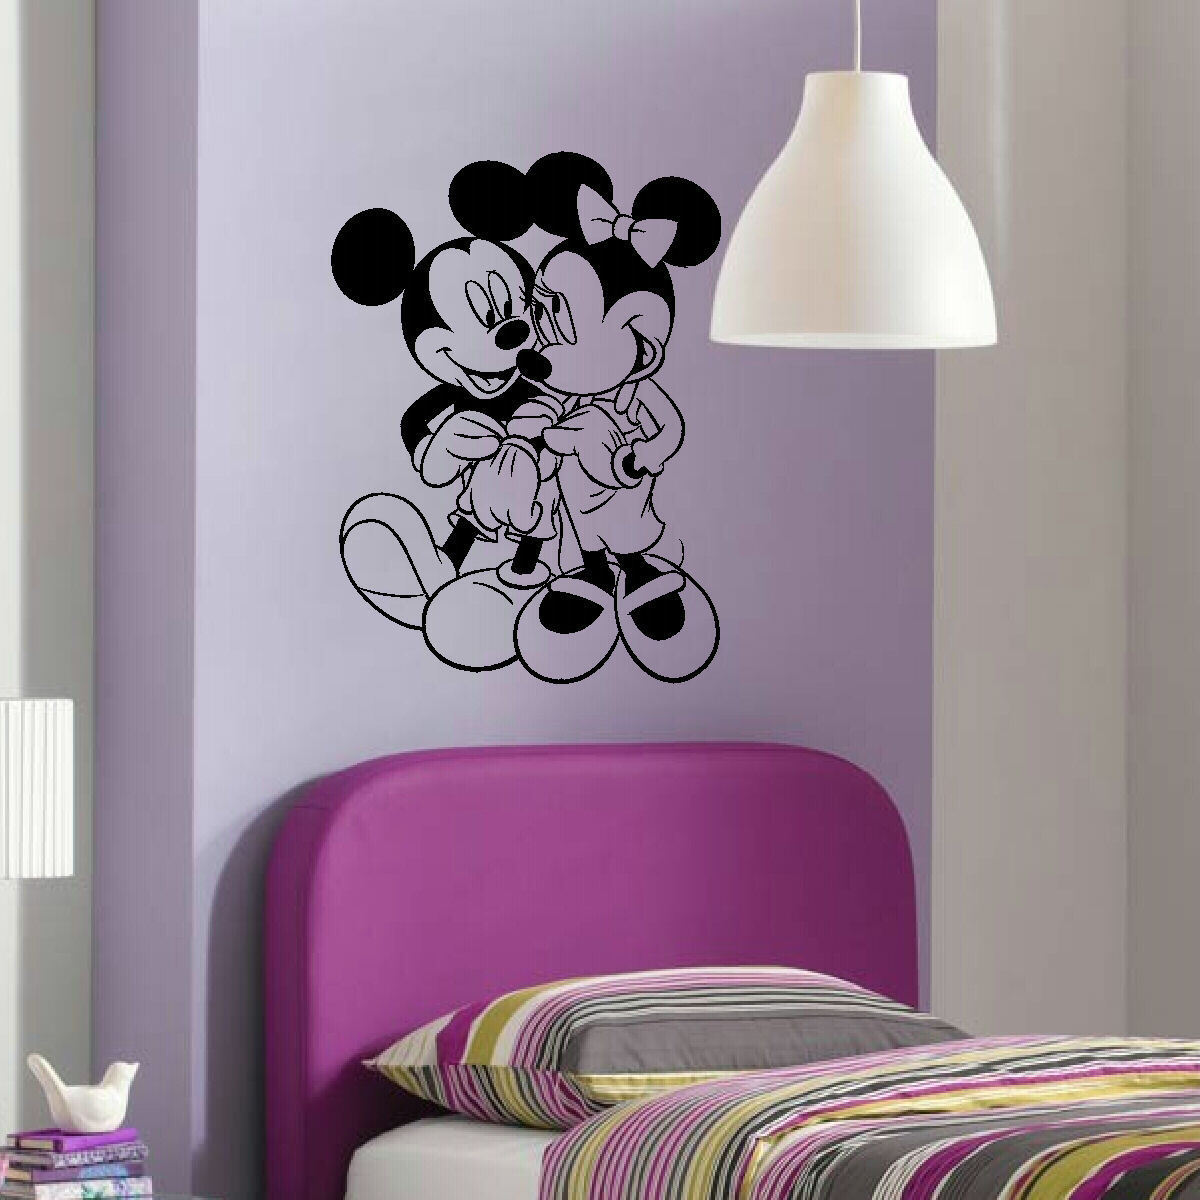 ... MINNIE MICKEY MOUSE WALL ART STICKER TRANSFER POSTER. Childrens ... Part 70